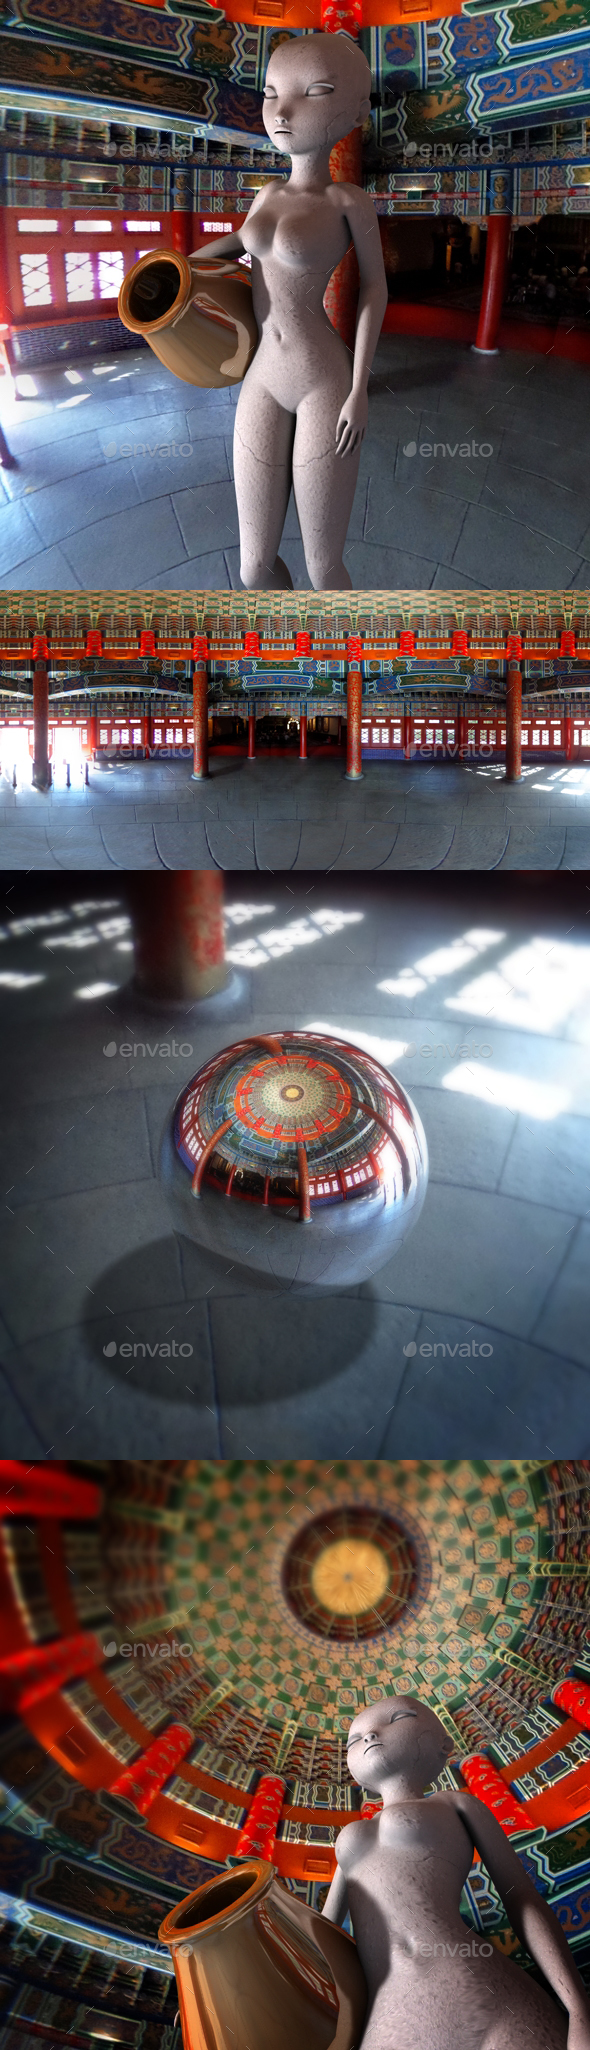 Chinese Temple Interior HDRI - 3DOcean Item for Sale